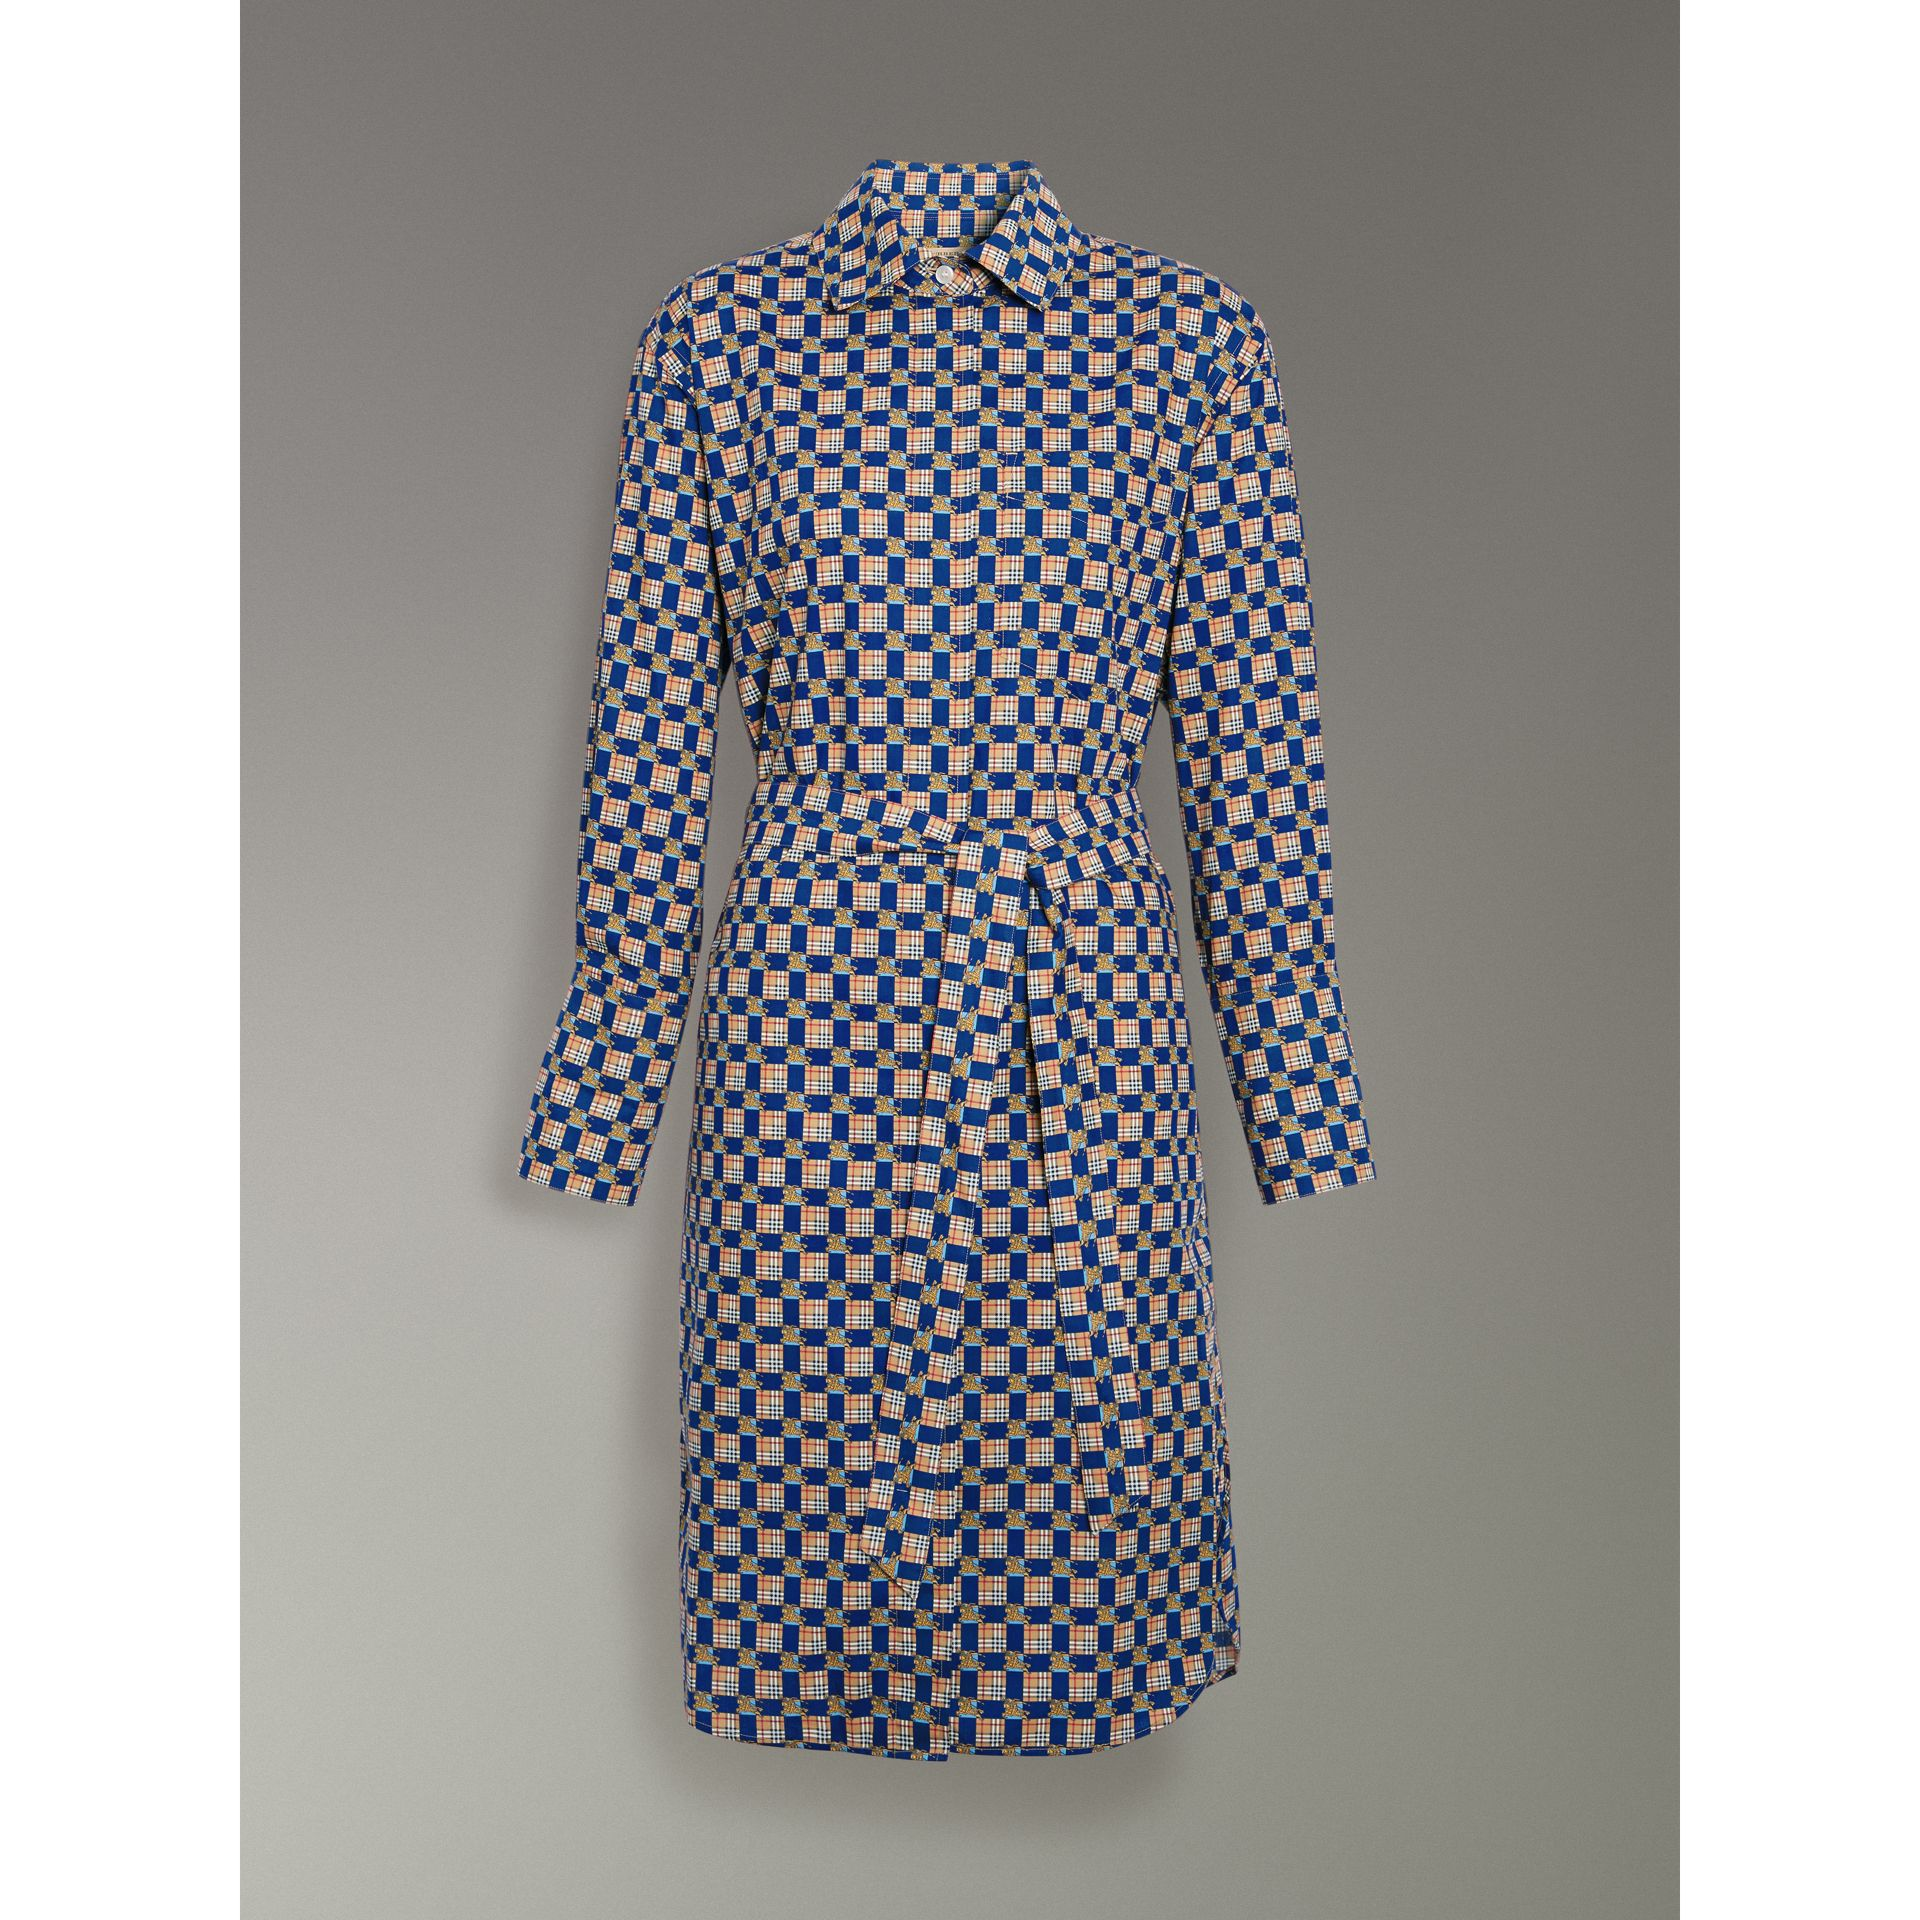 Tiled Archive Print Cotton Shirt Dress in Navy - Women | Burberry - gallery image 3